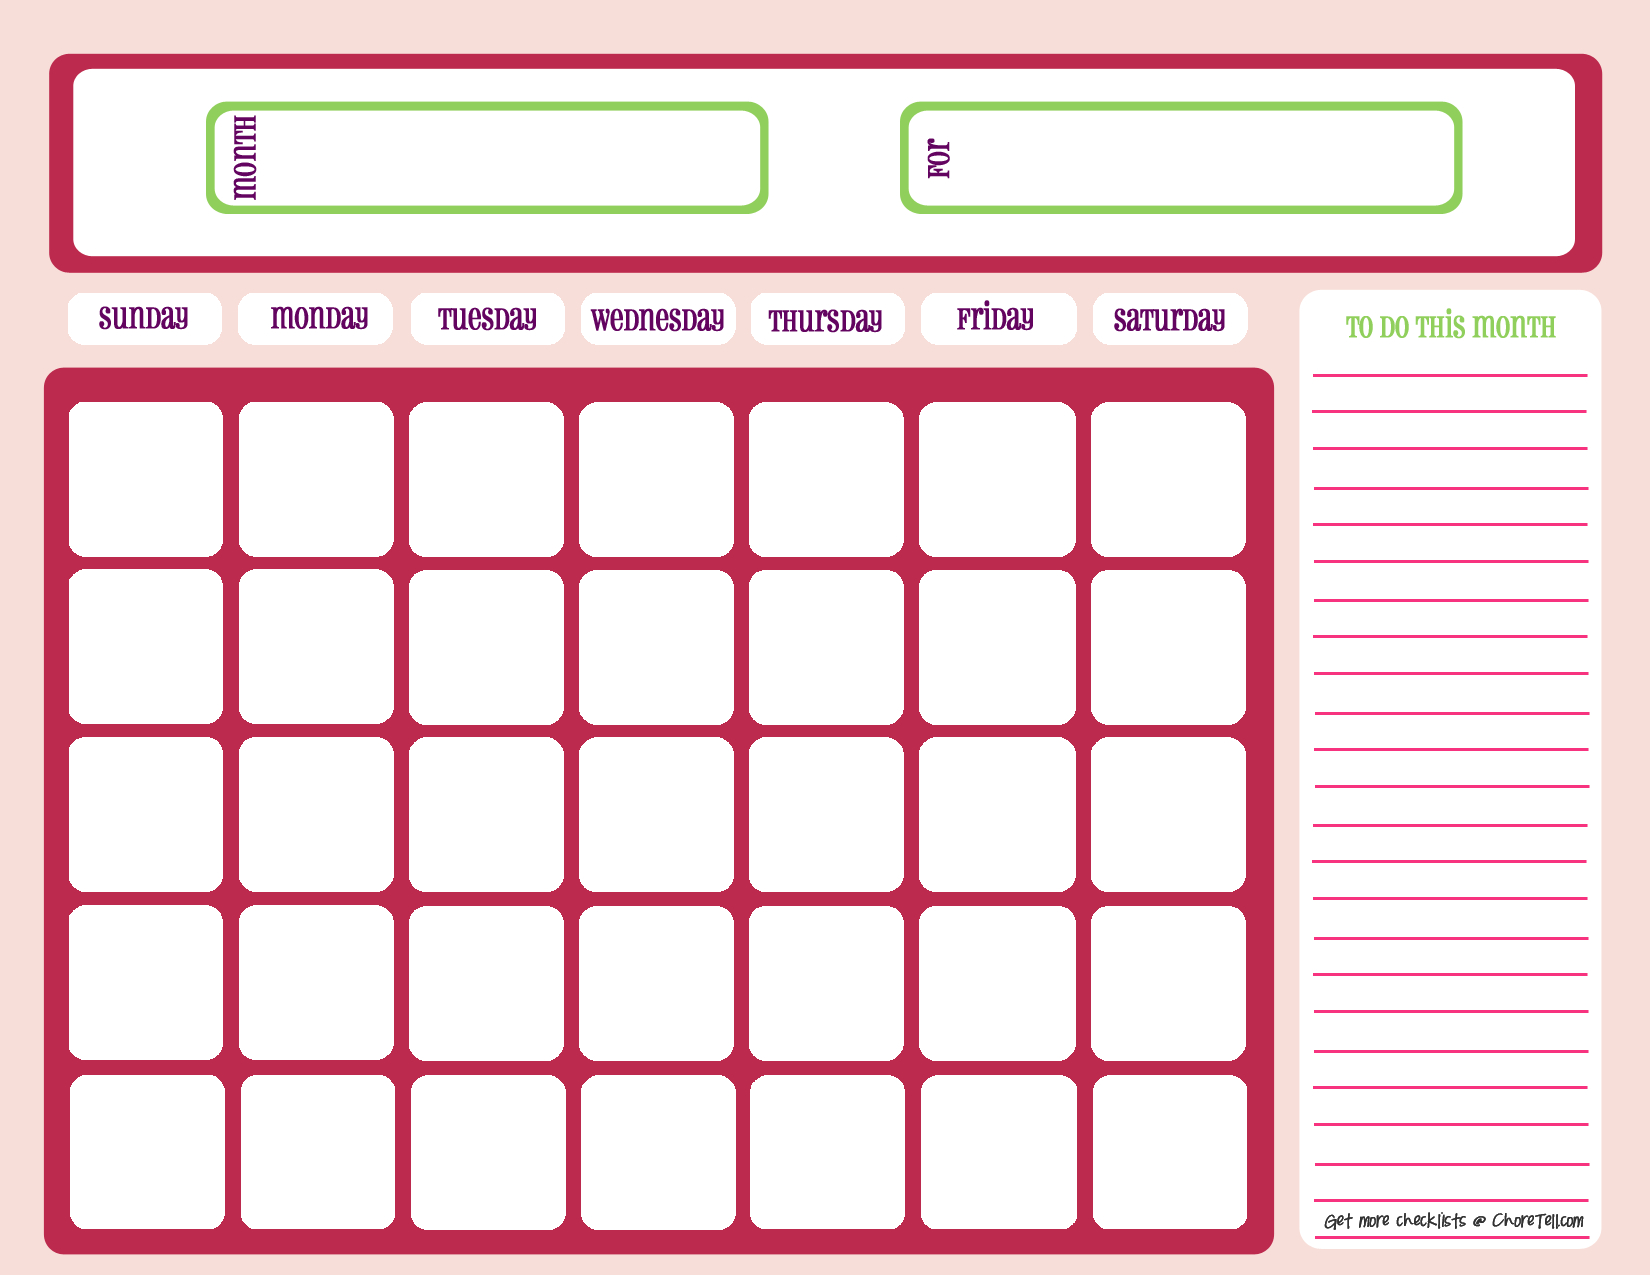 Blank Month Calendar - Pinks - Free Printable Downloads From Choretell with regard to Blank Monthly Calendar Print Out